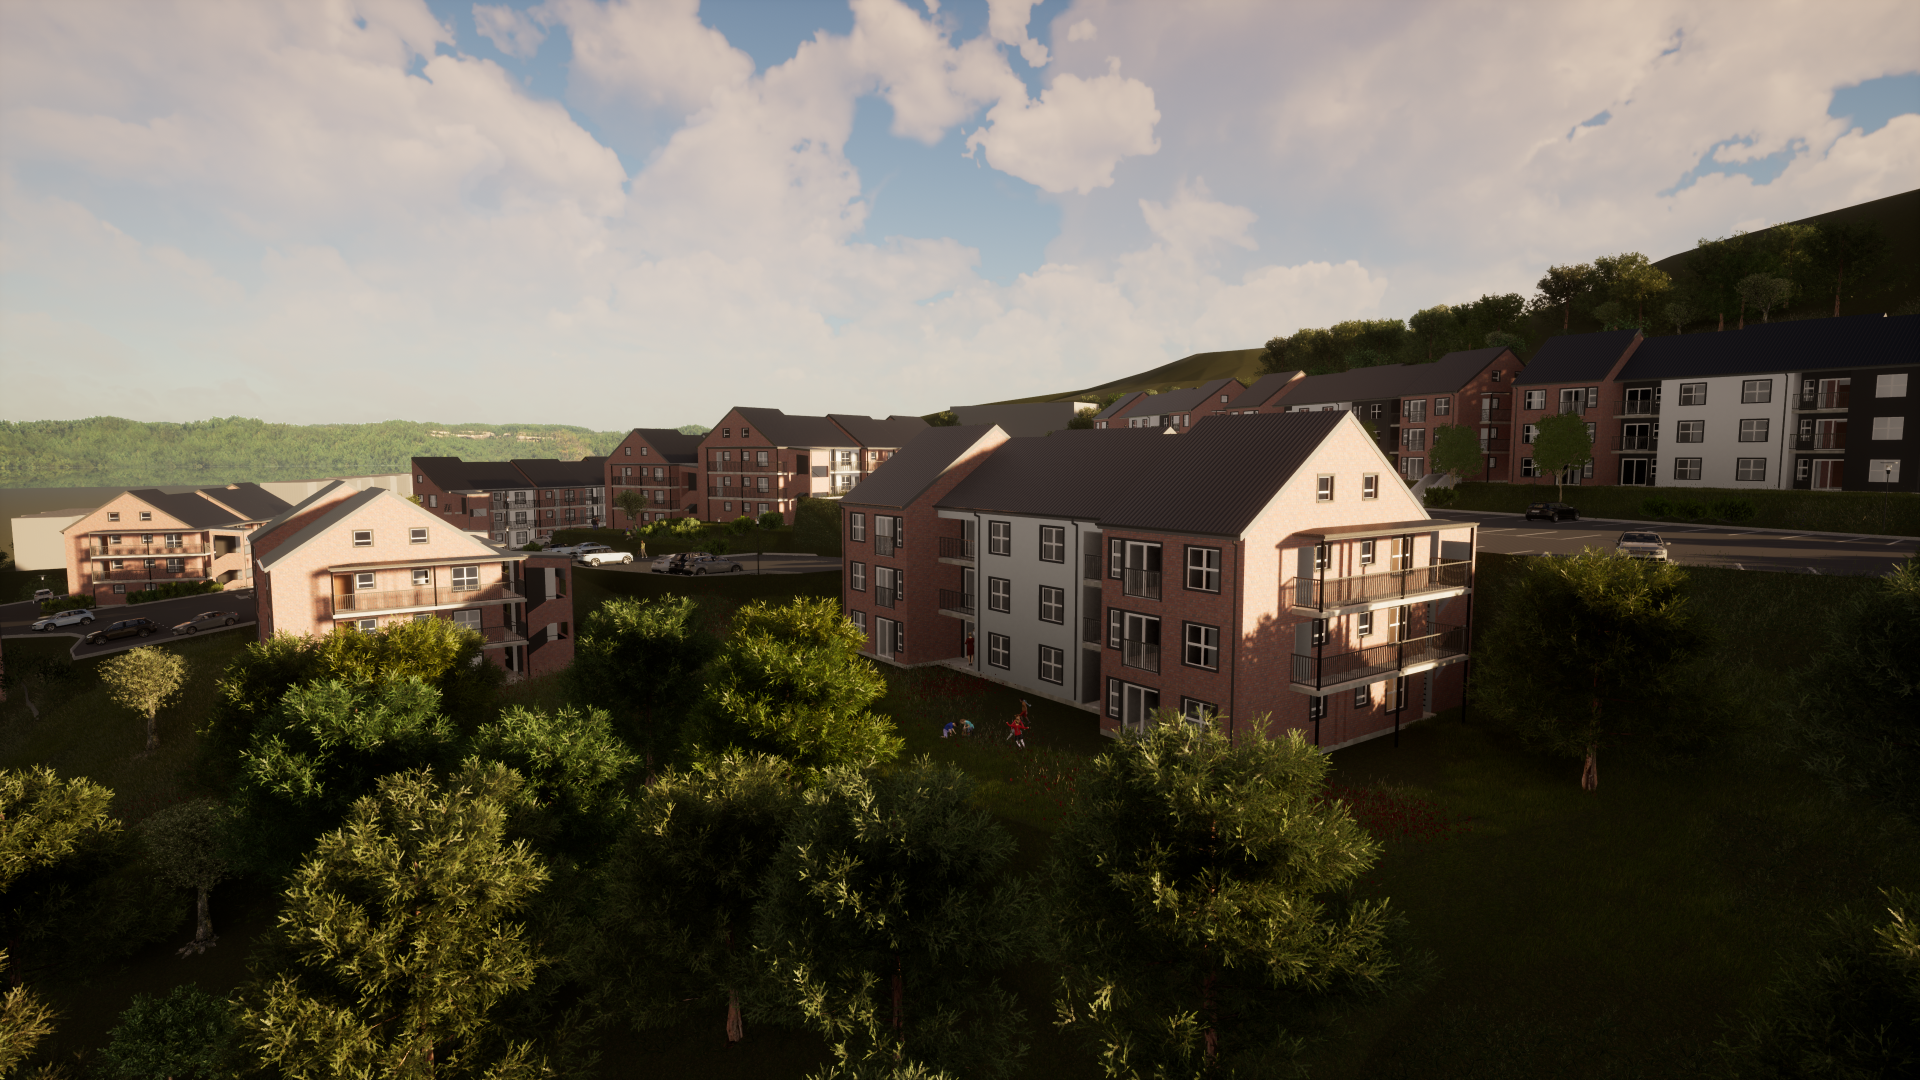 2 Bedroom Apartment / Flat For Sale in Chase Valley